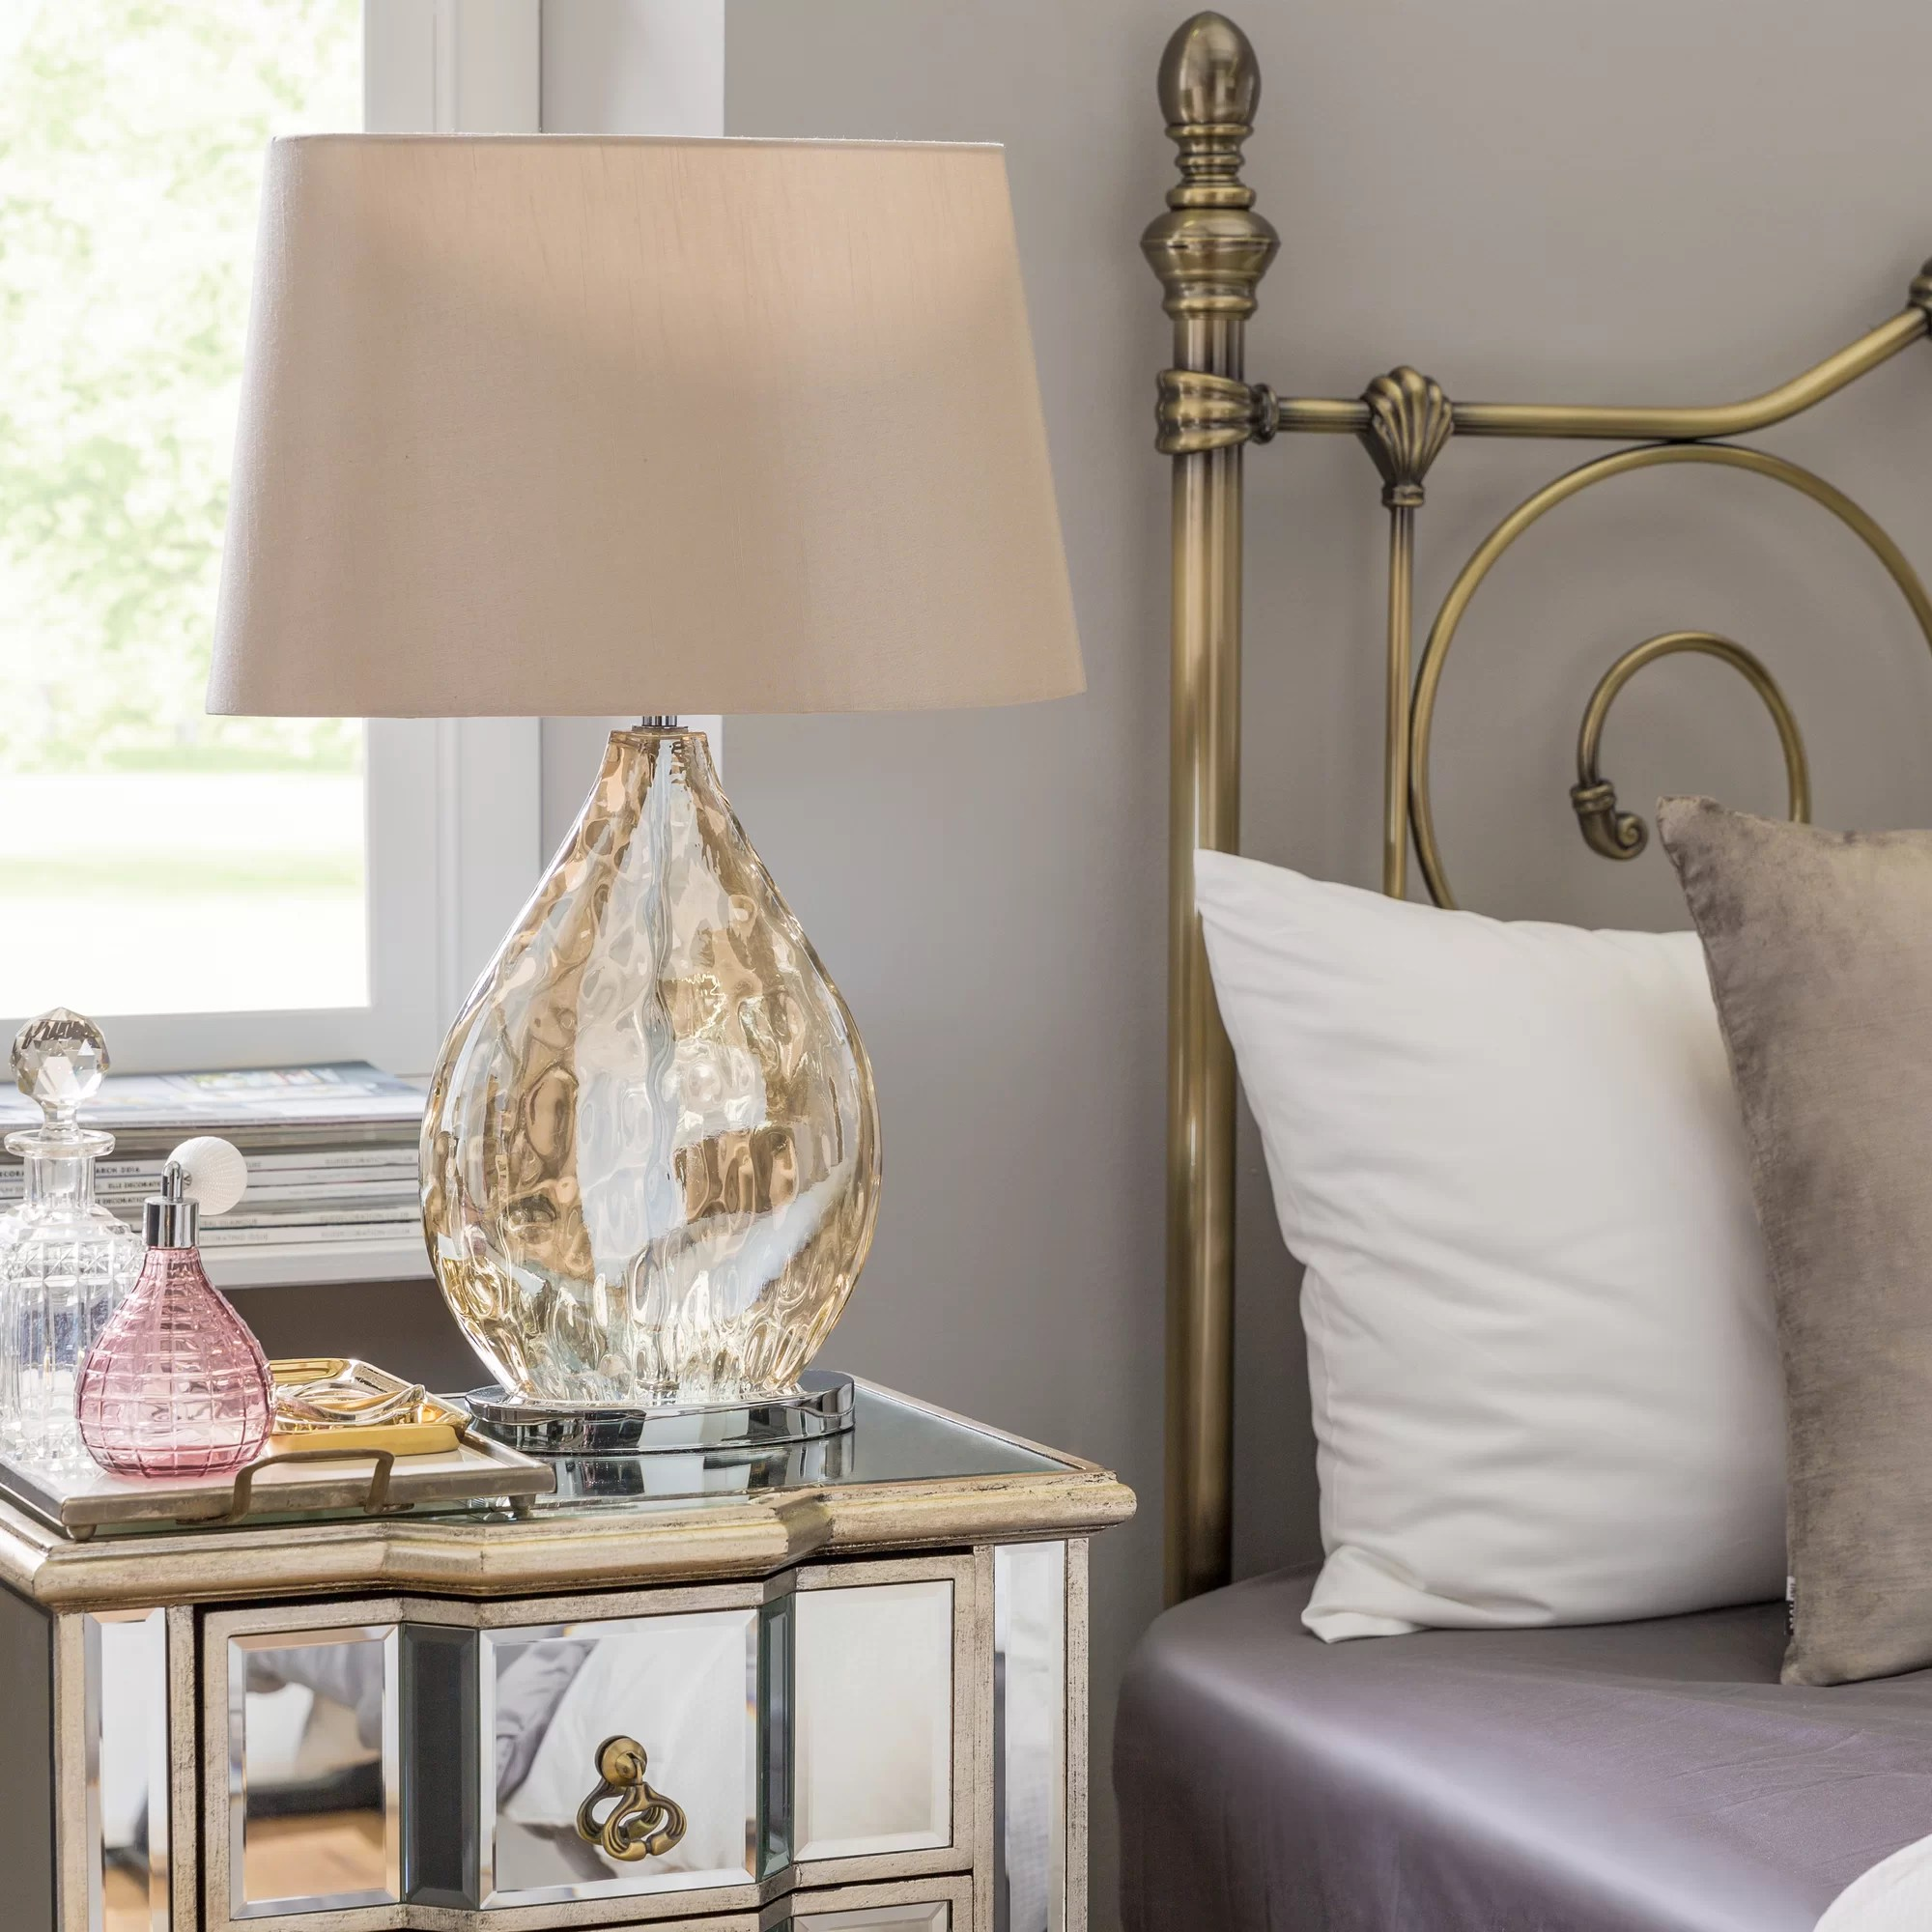 title | Lamp For Bedroom Side Table